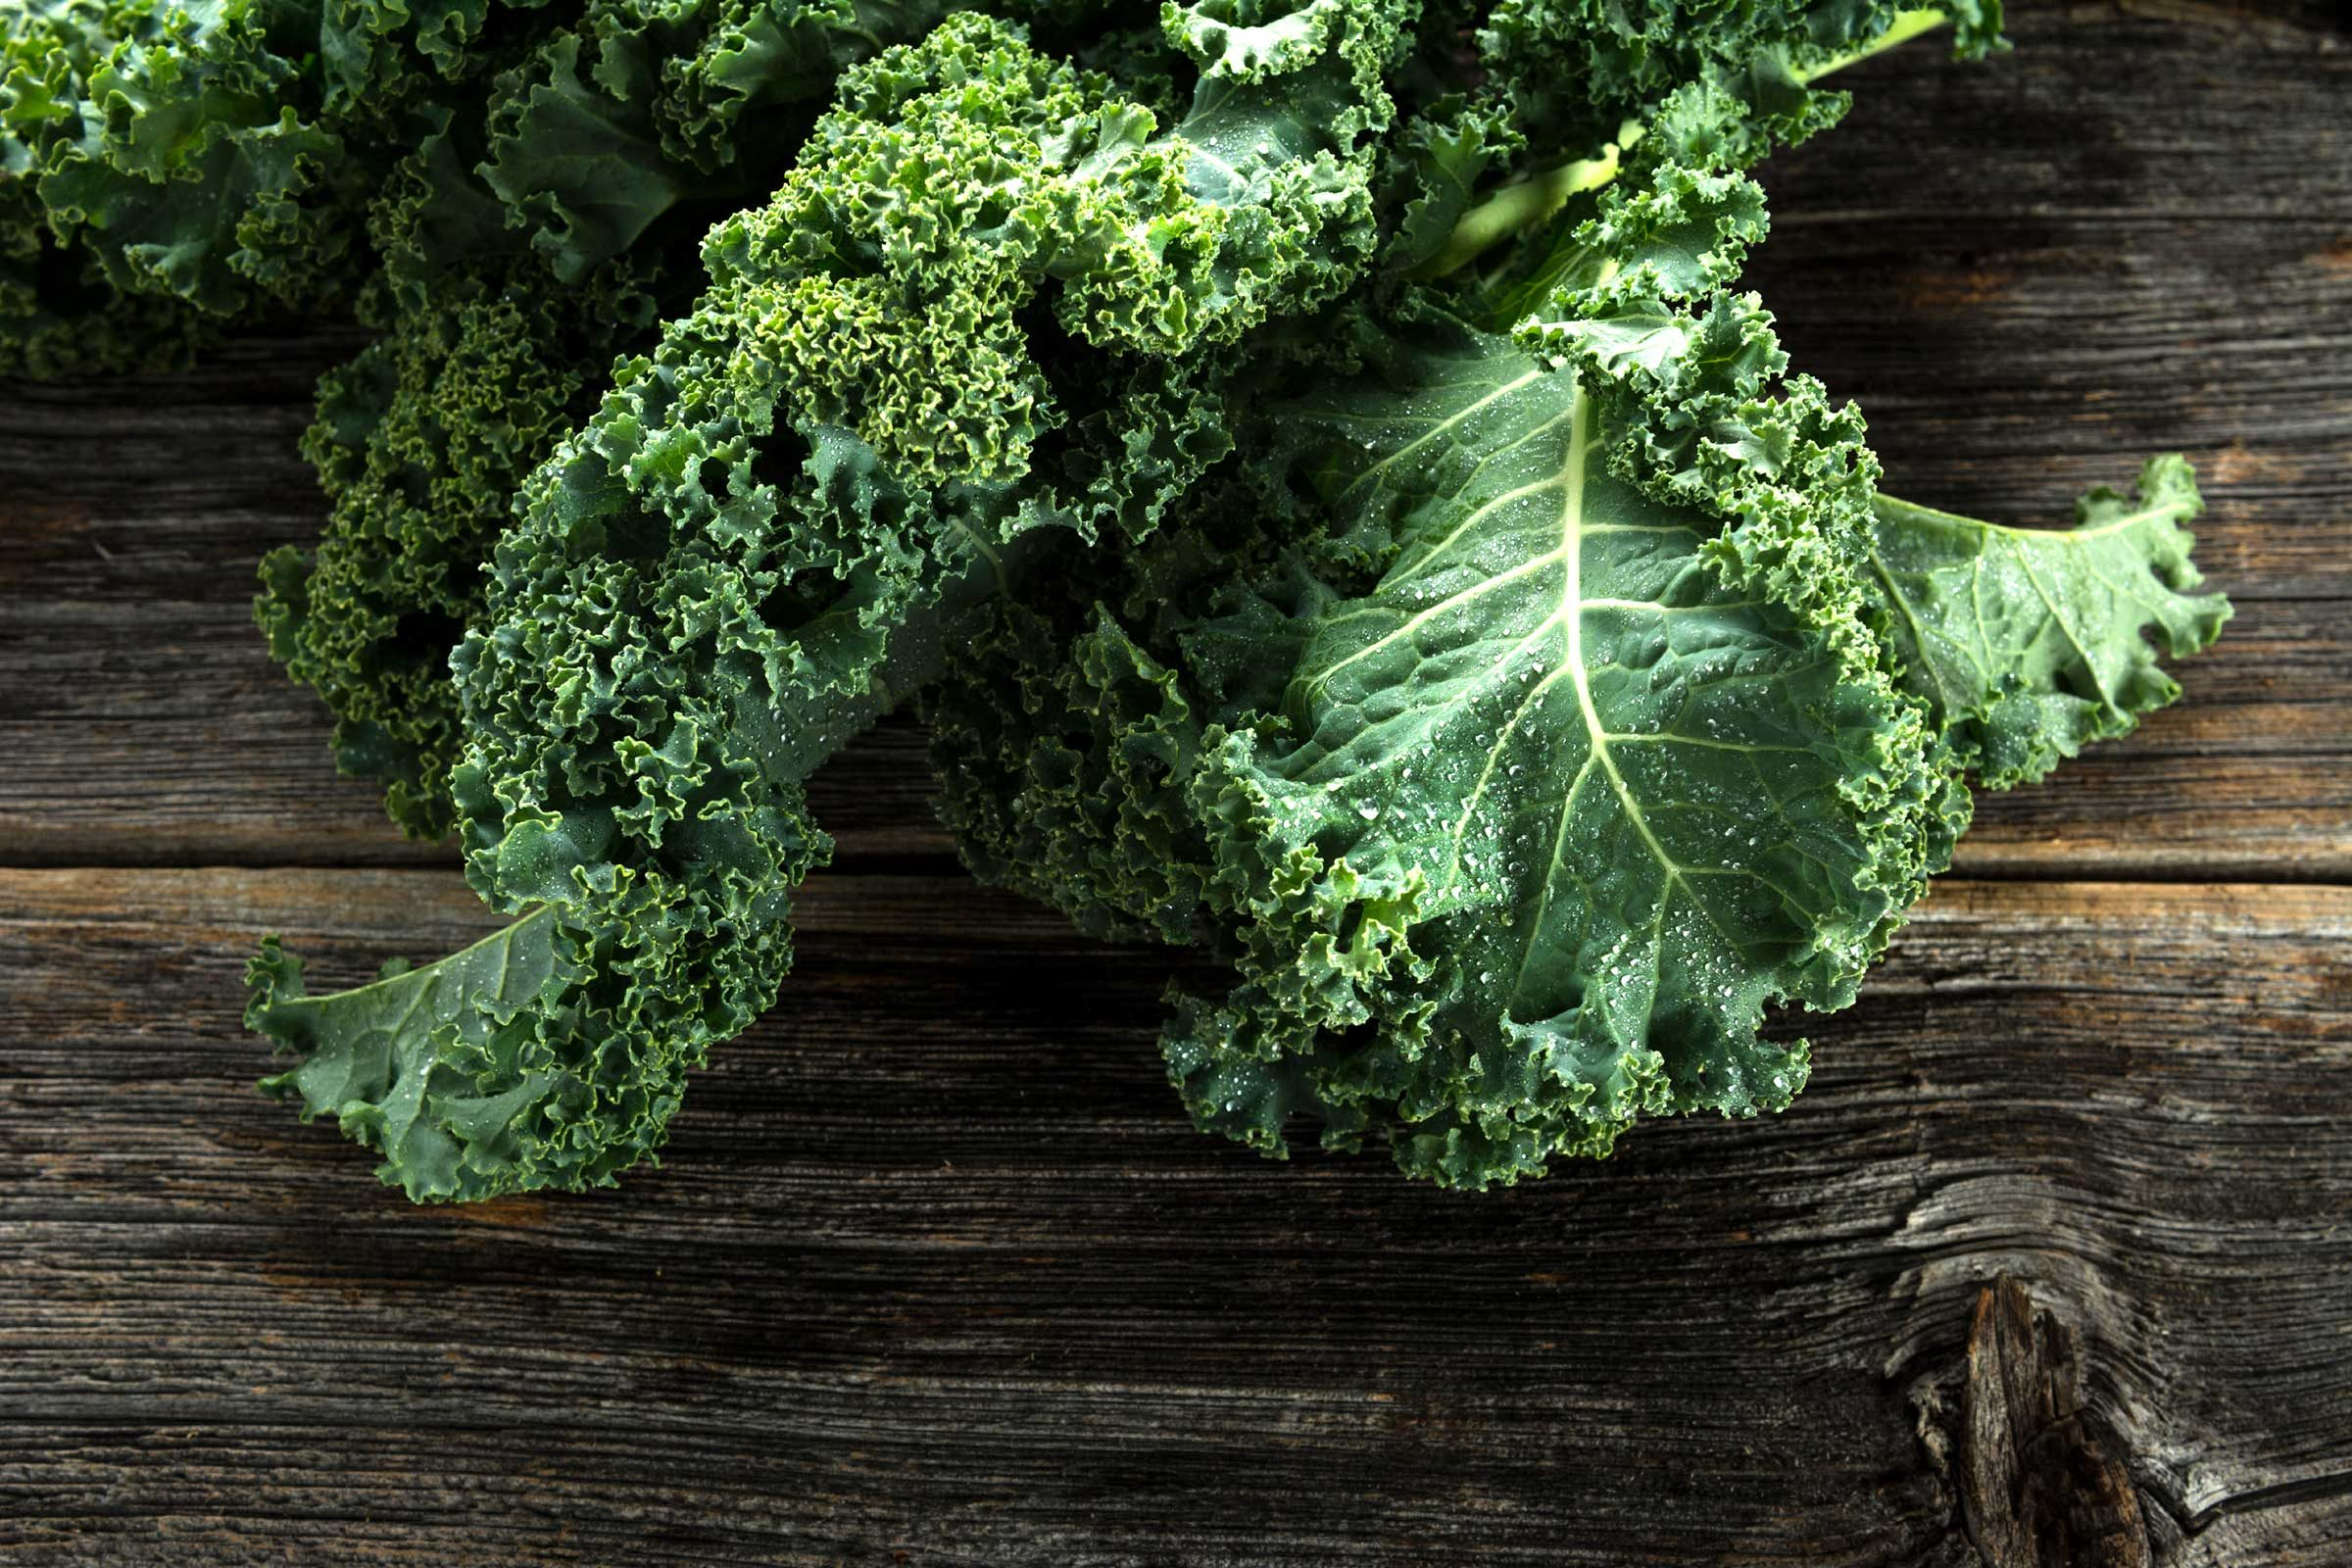 Load up on kale and other cooking greens